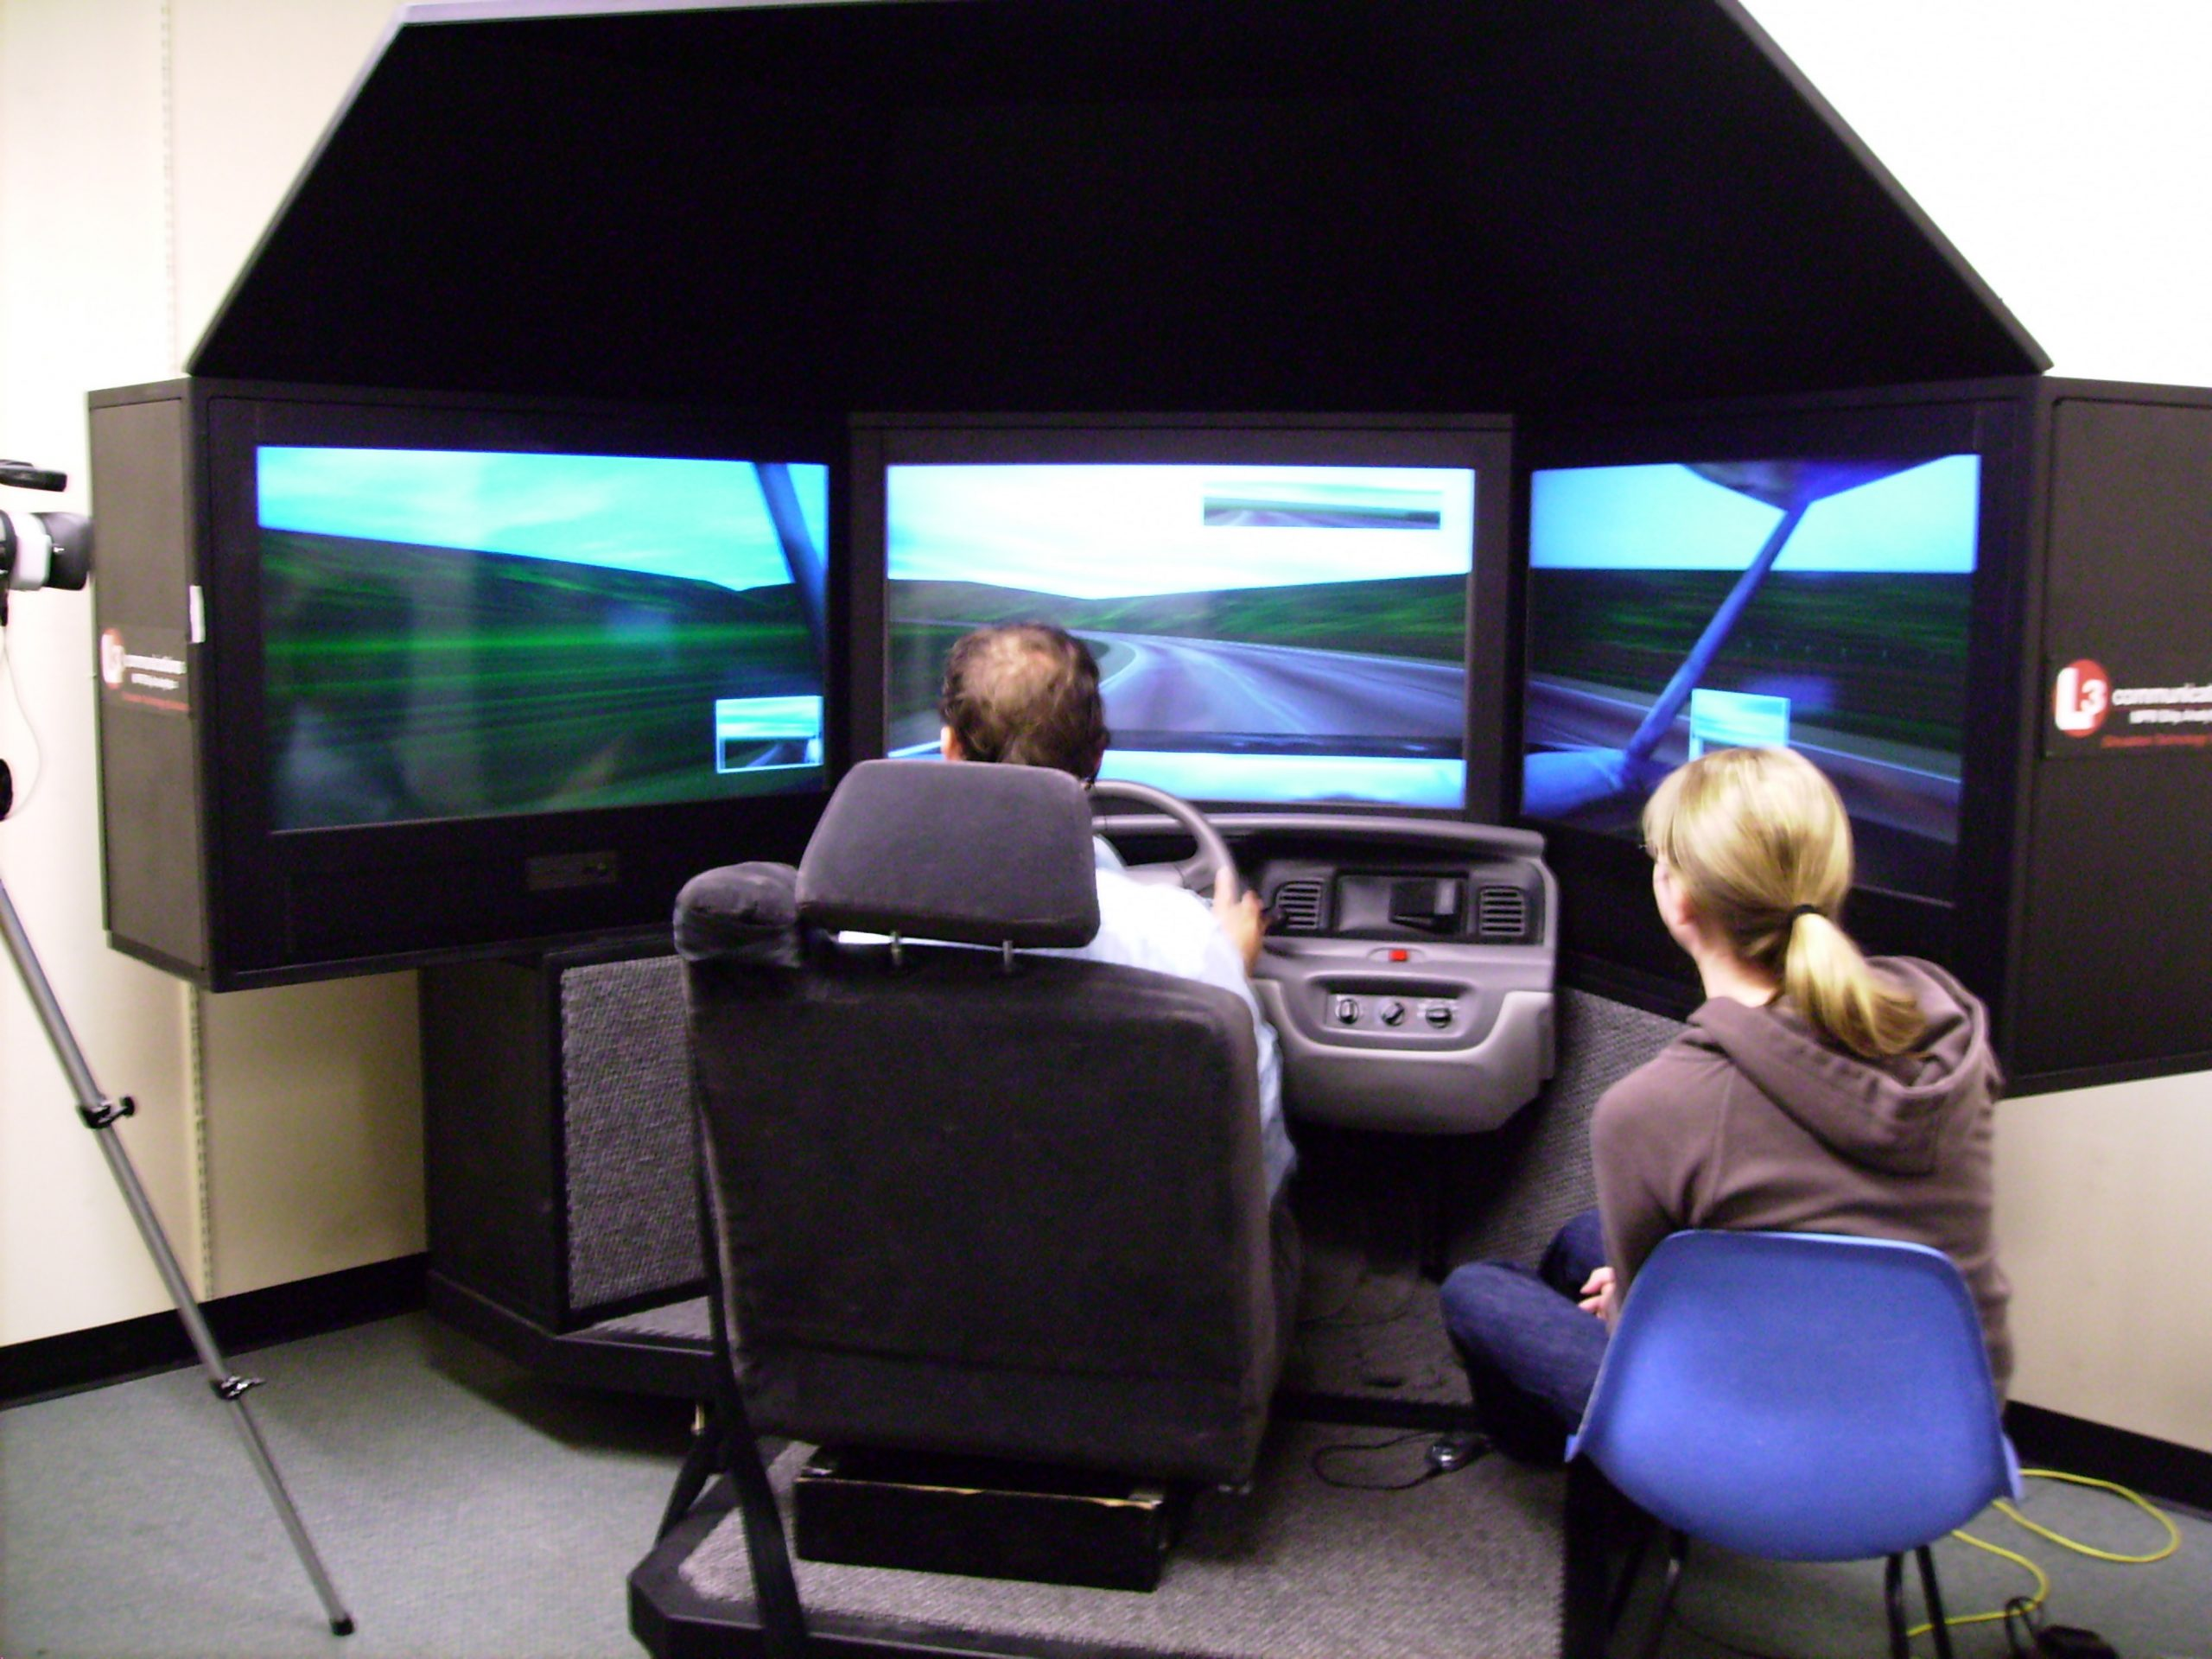 A student talks on a hands-free cell phone while operating a high-tech driving simulator. The simulator was used during a University of Utah study that found motorists who talk on cell phones while driving are as impaired as drunken drivers with blood-alcohol levels at the legal limit of 0.08 percent.